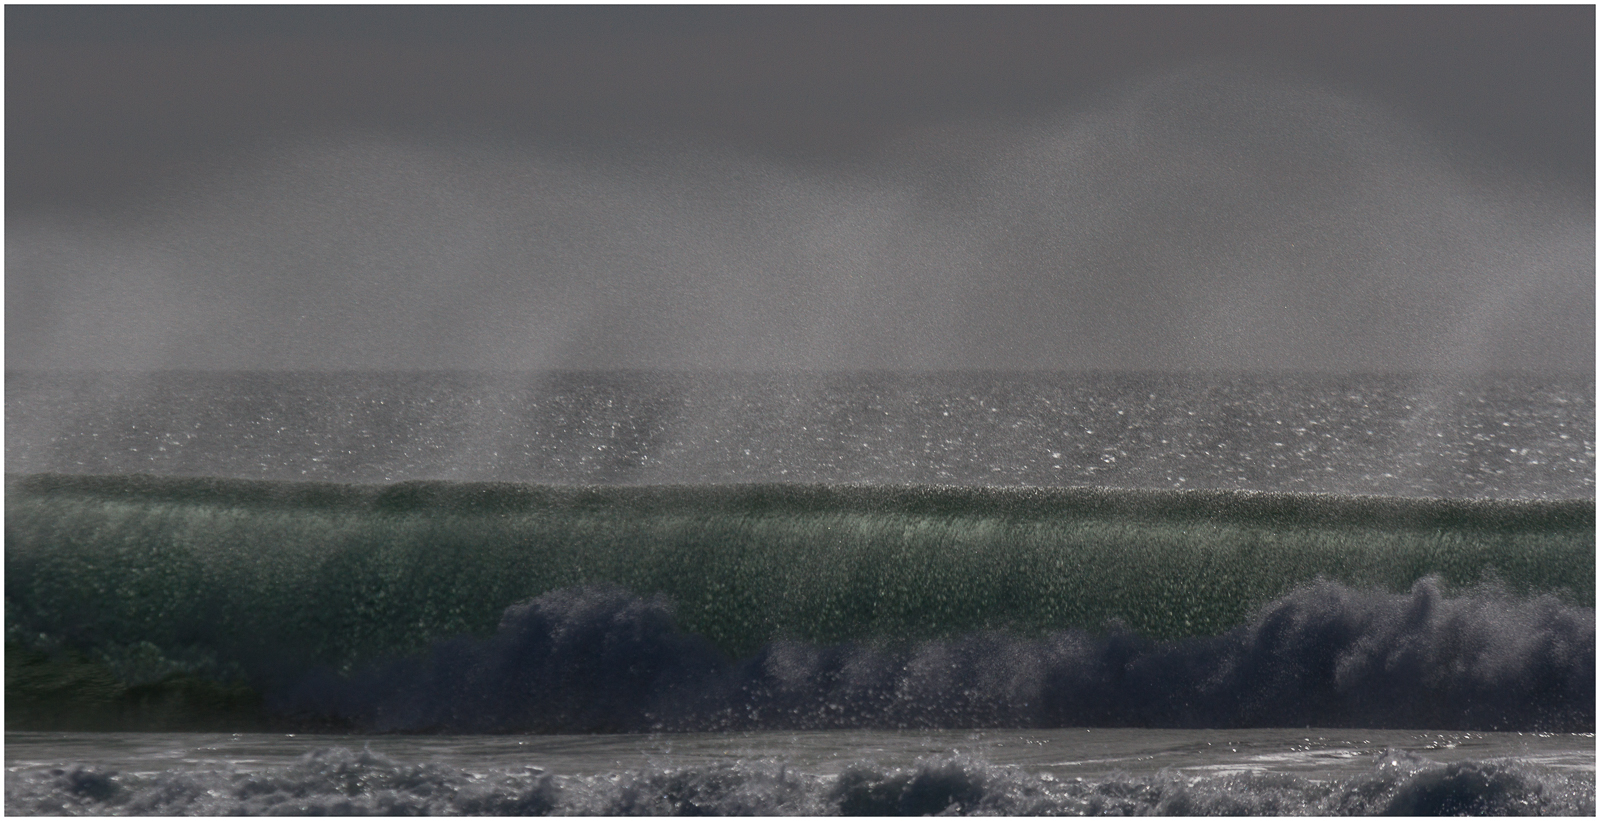 Spray from a wave is captured on film in Widemouth Bay. Photograph taken by a guest at Gwelmor self-catering holiday cottage in Widemouth Bay, North Cornwall